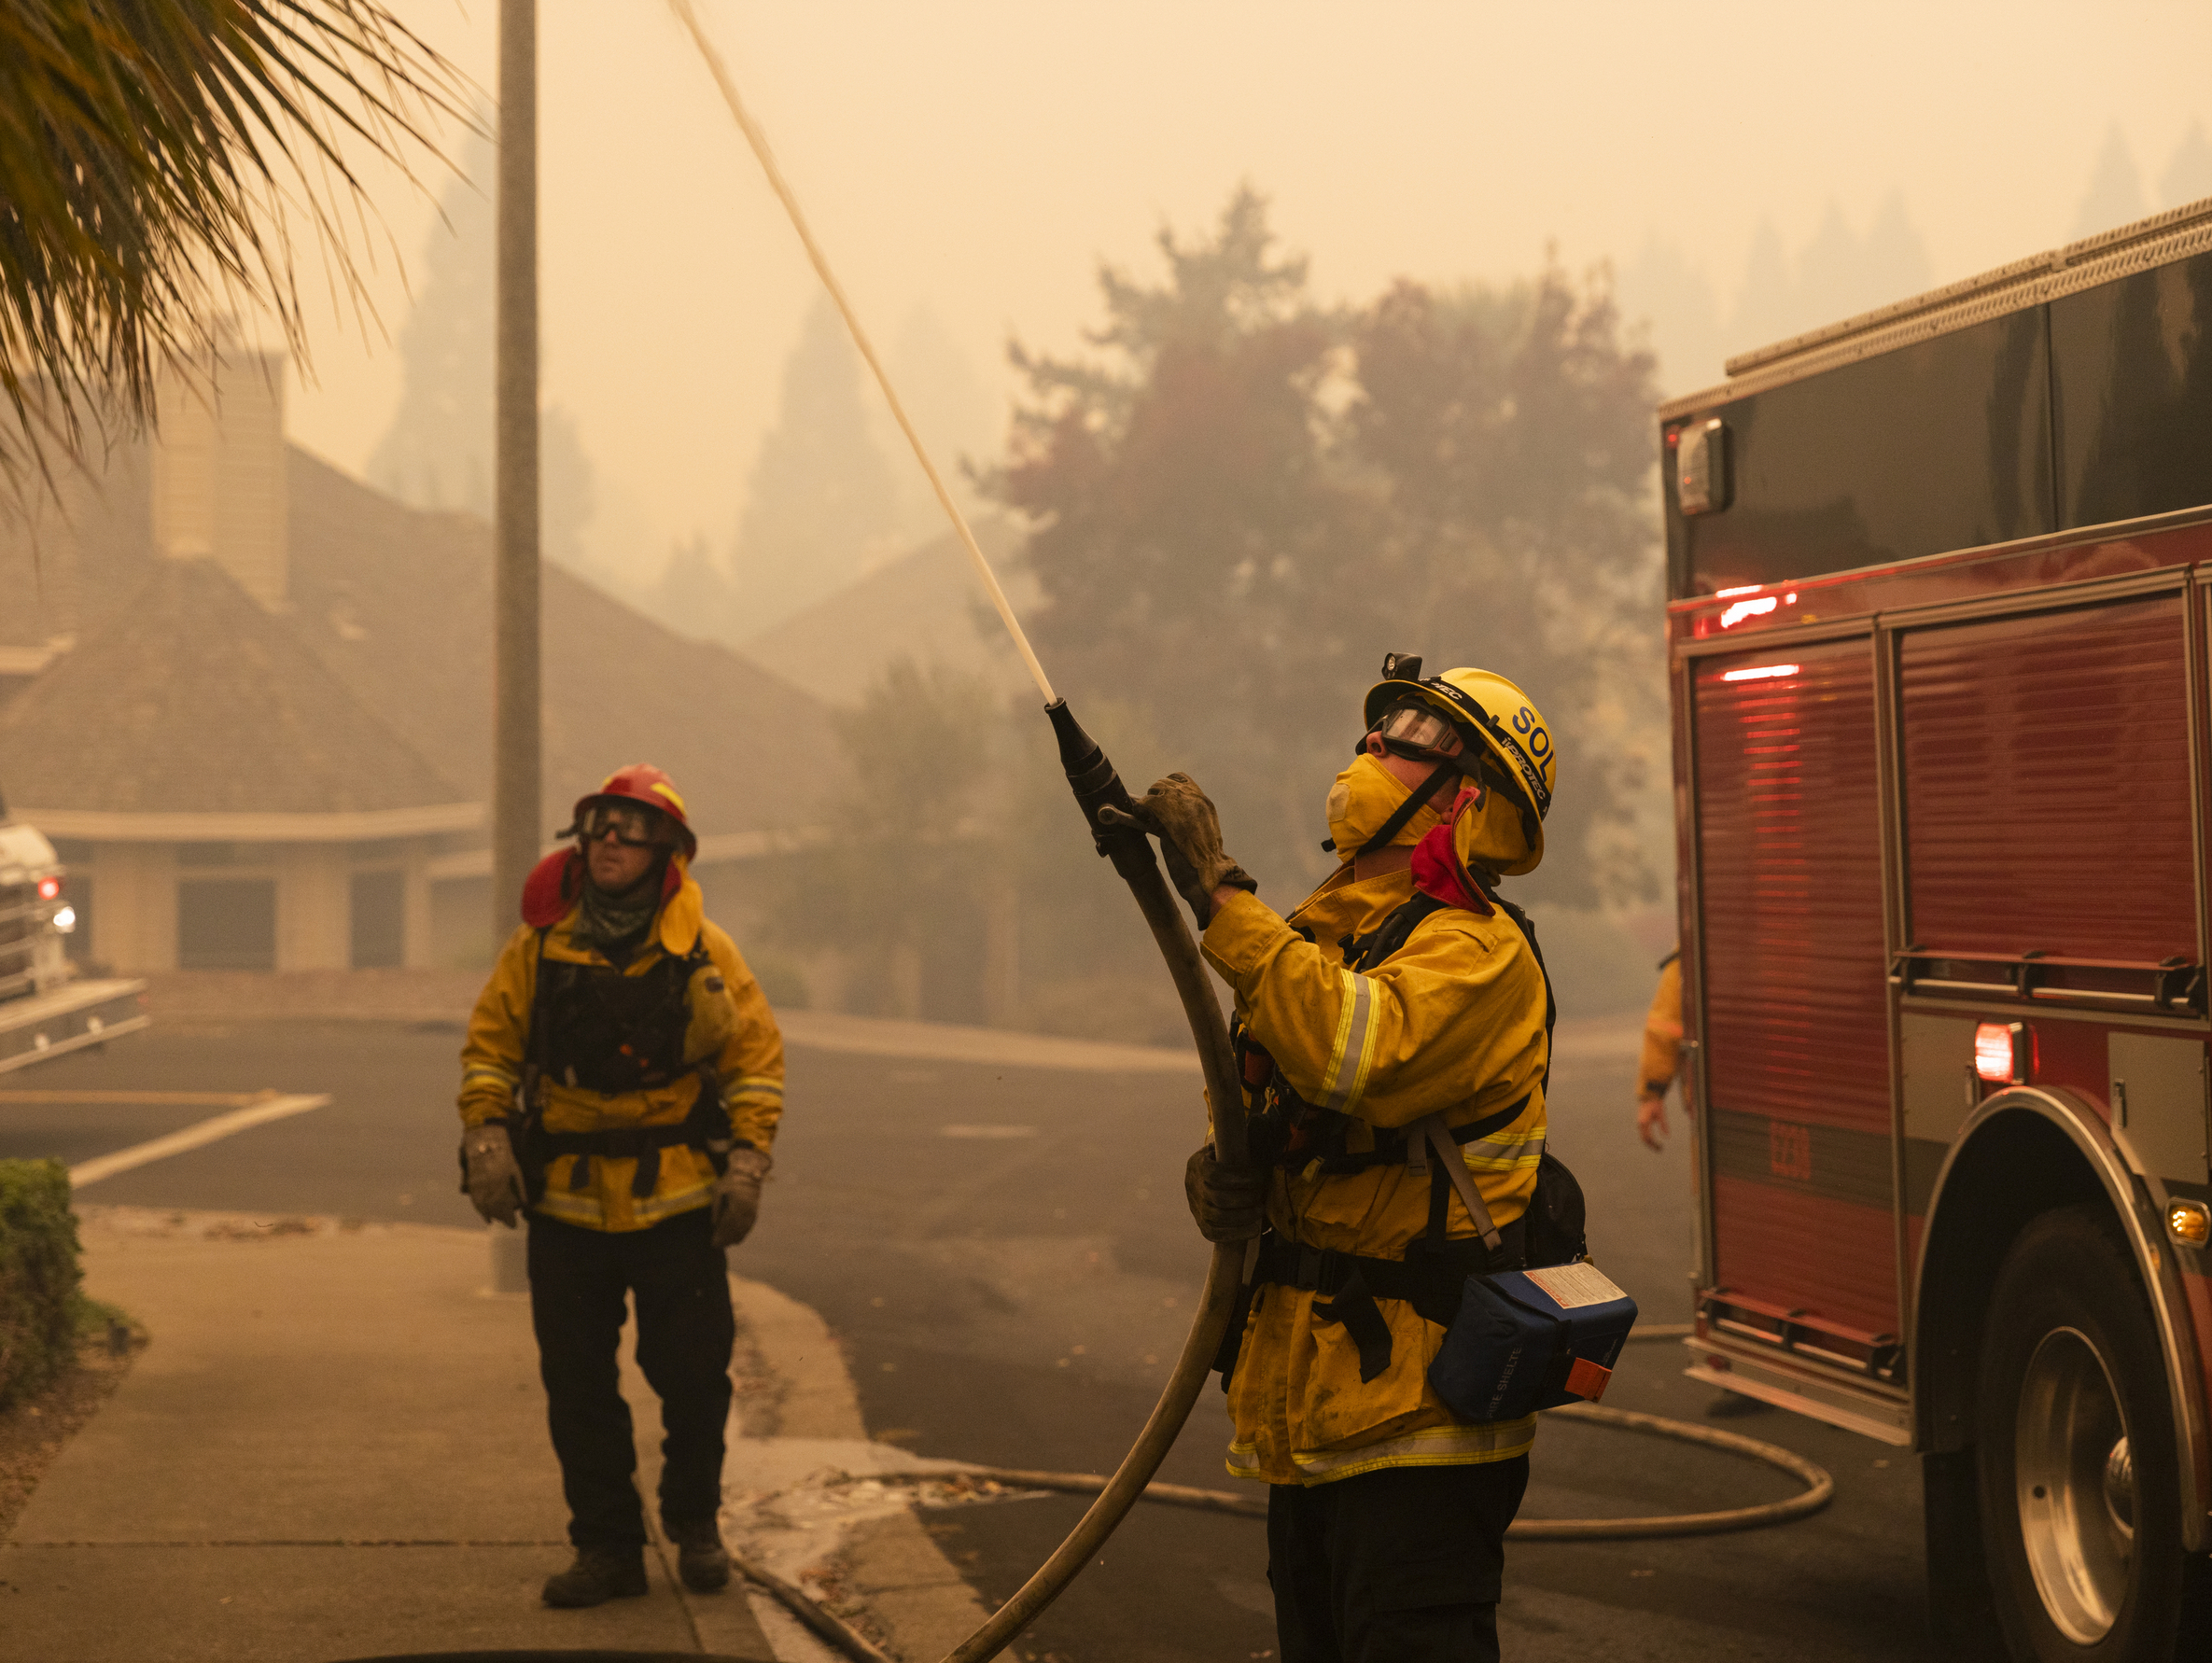 A firefighter sprays water toward trees as crews work to control the Kincade Fire on Vinecrest Road in Windsor, Calif., on Sunday, Oct. 27, 2019. (AP Photo/Ethan Swope)